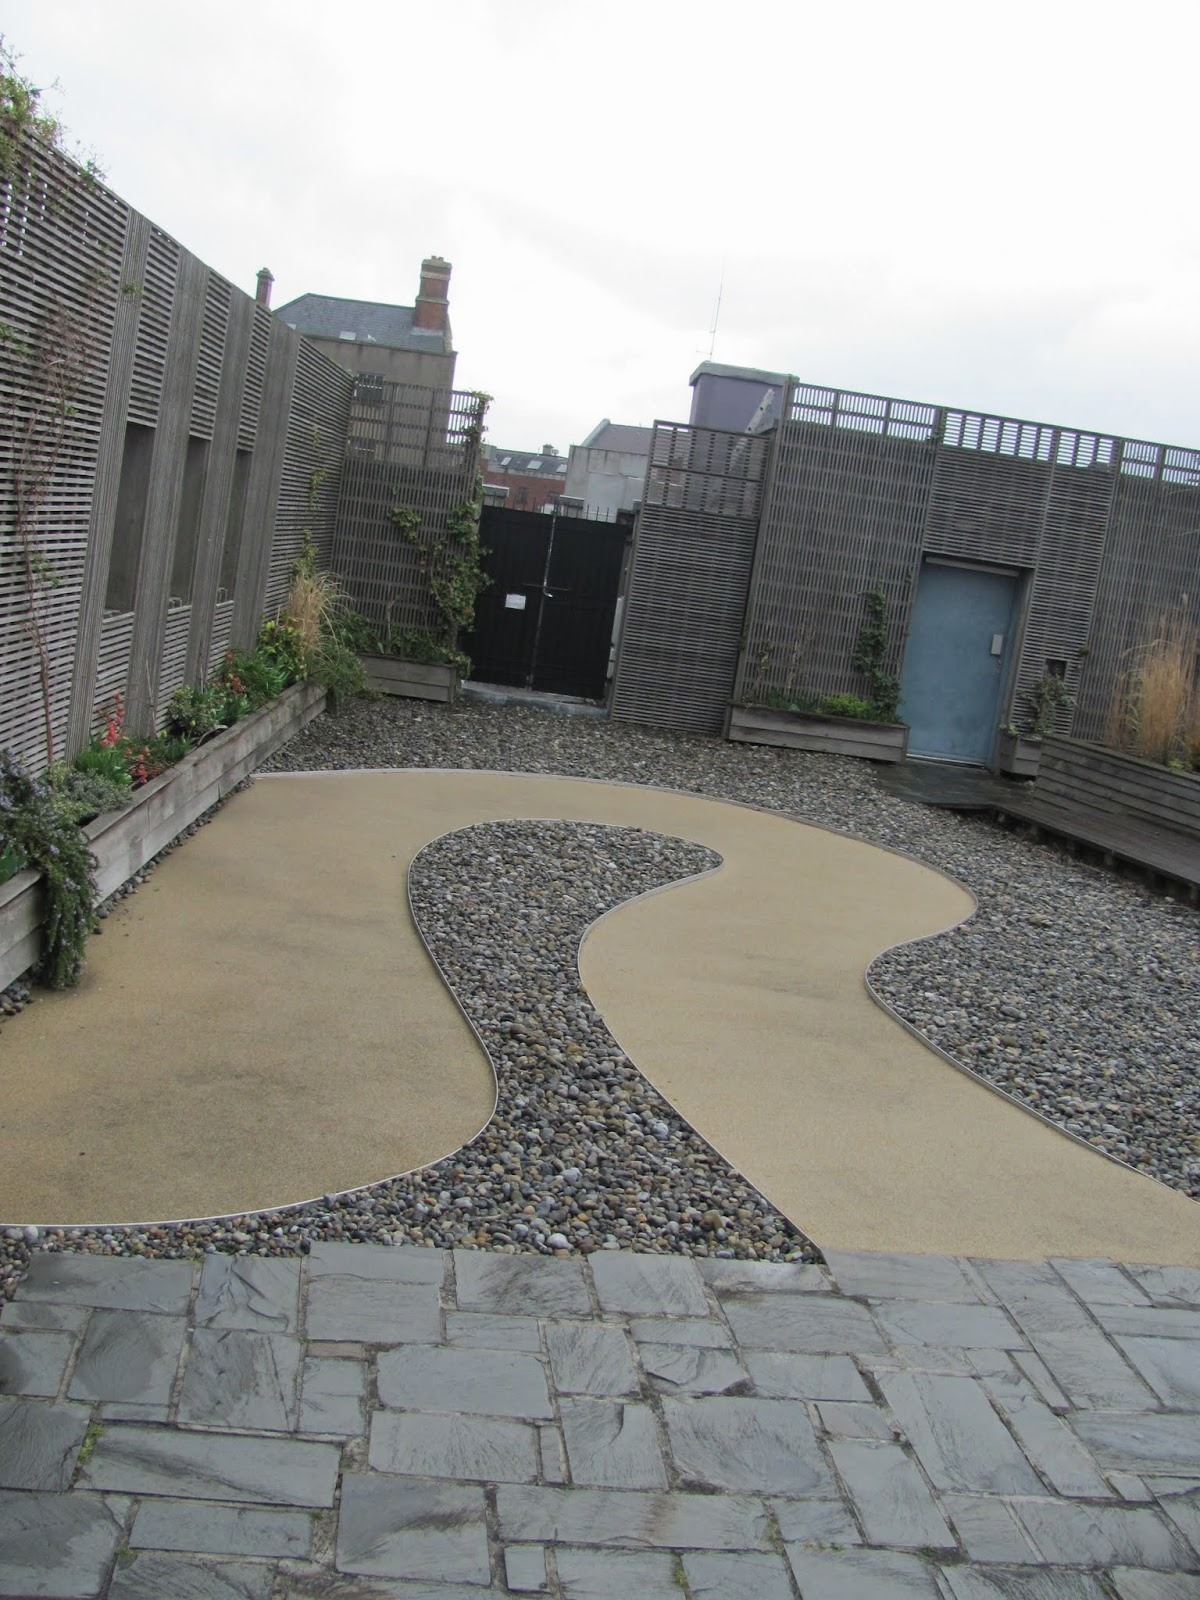 Chester Beatty Roof Garden Dublin Castle Dublin